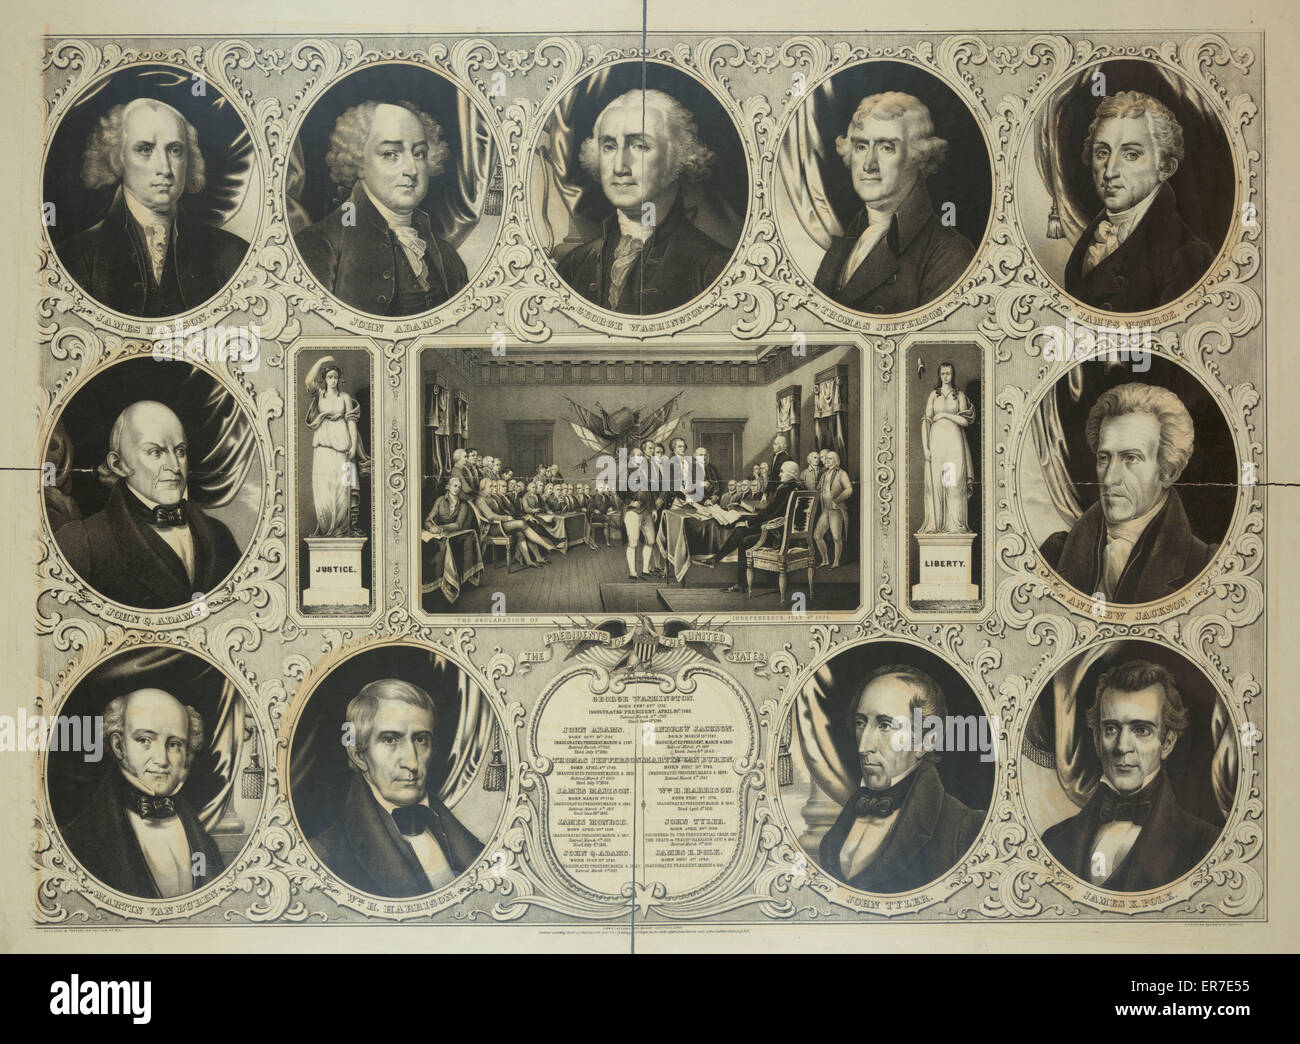 The presidents of the United States. Date c1846 Dec. 19. - Stock Image